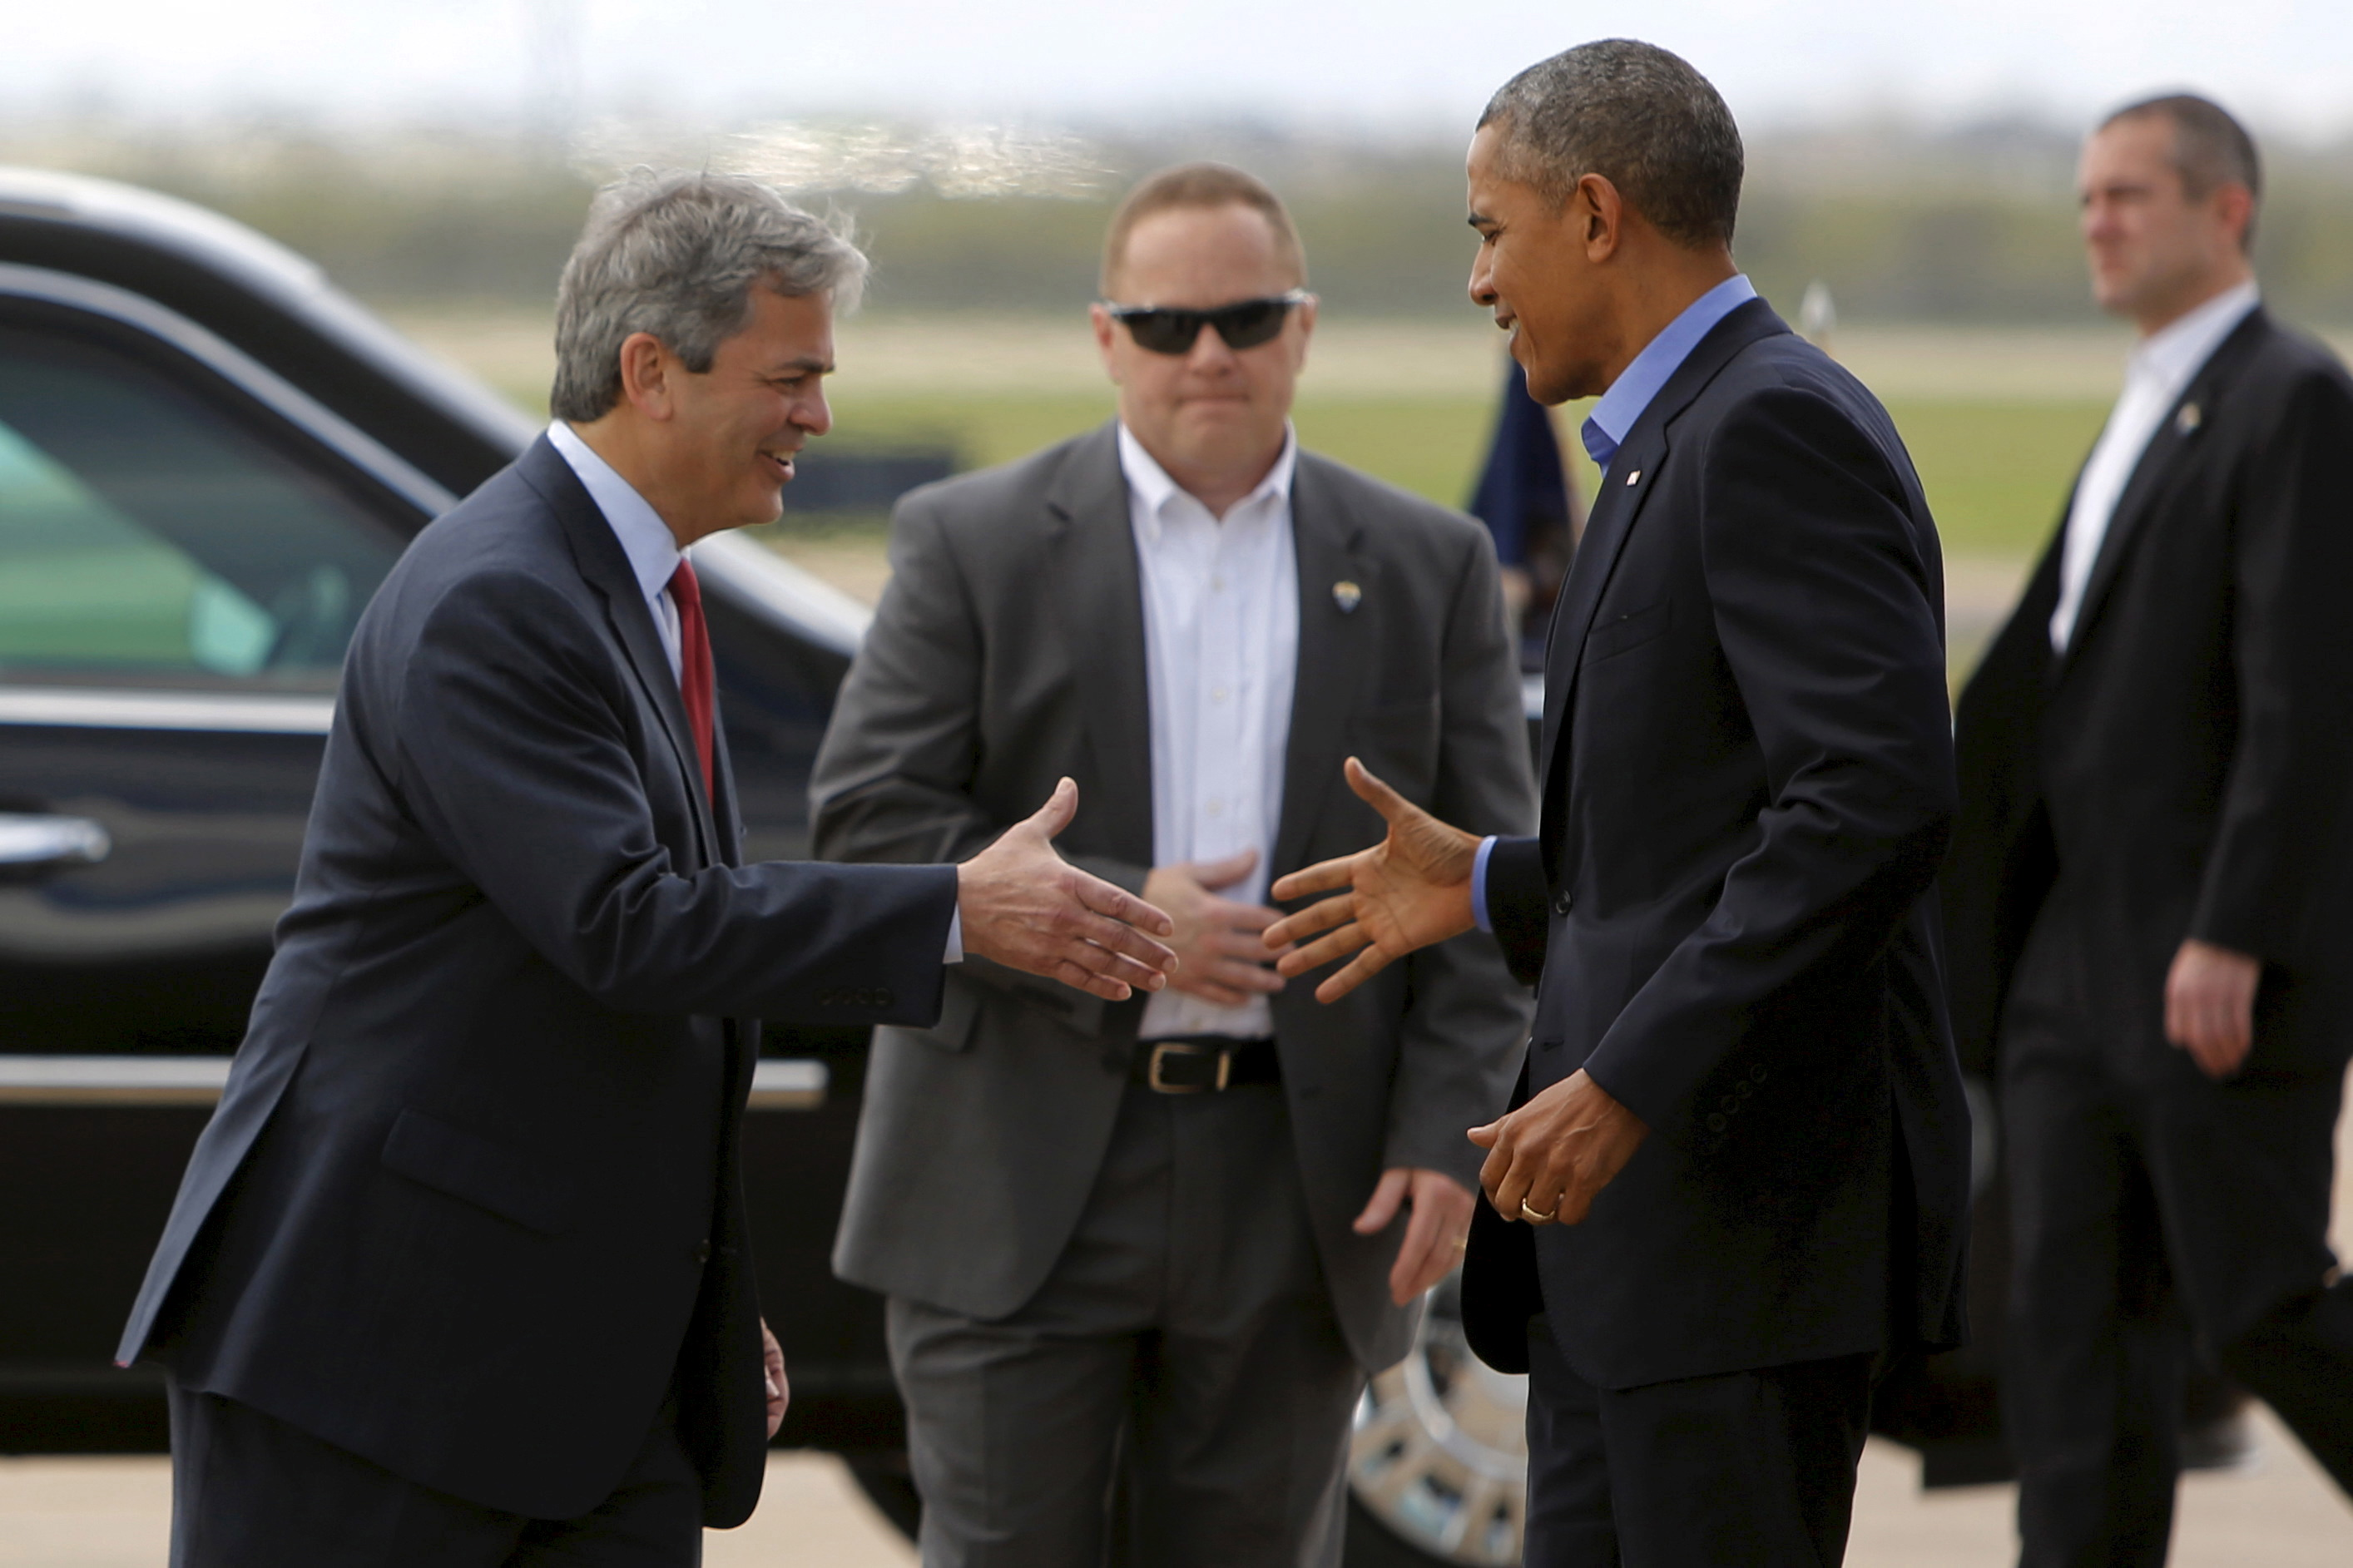 Austin Mayor Steve Adler (L) greets U.S. President Barack Obama as he arrives at Austin Bergstrom International Airport in Austin, Texas, U.S., March 11, 2016. REUTERS/Jonathan Ernst /File Photo